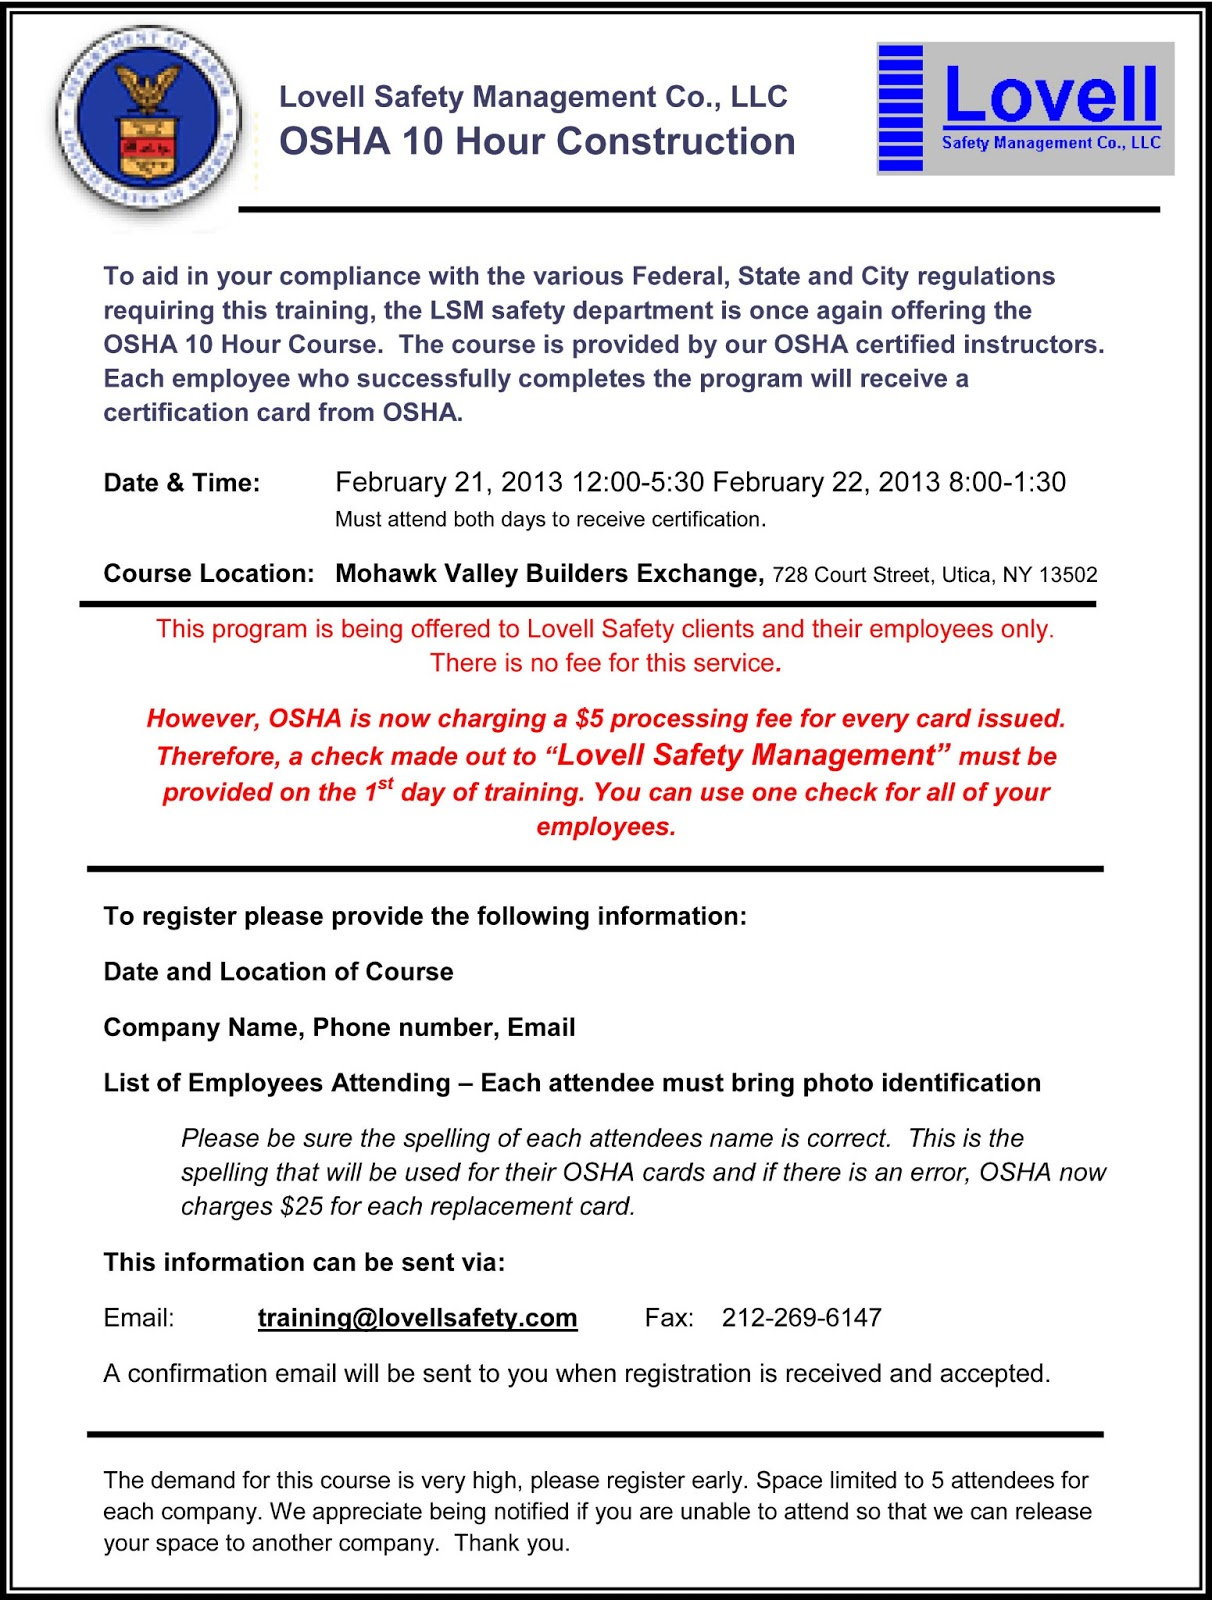 Safety pays osha 10 hour course in construction february 21st pre registration is required please see attached brochure 1betcityfo Images